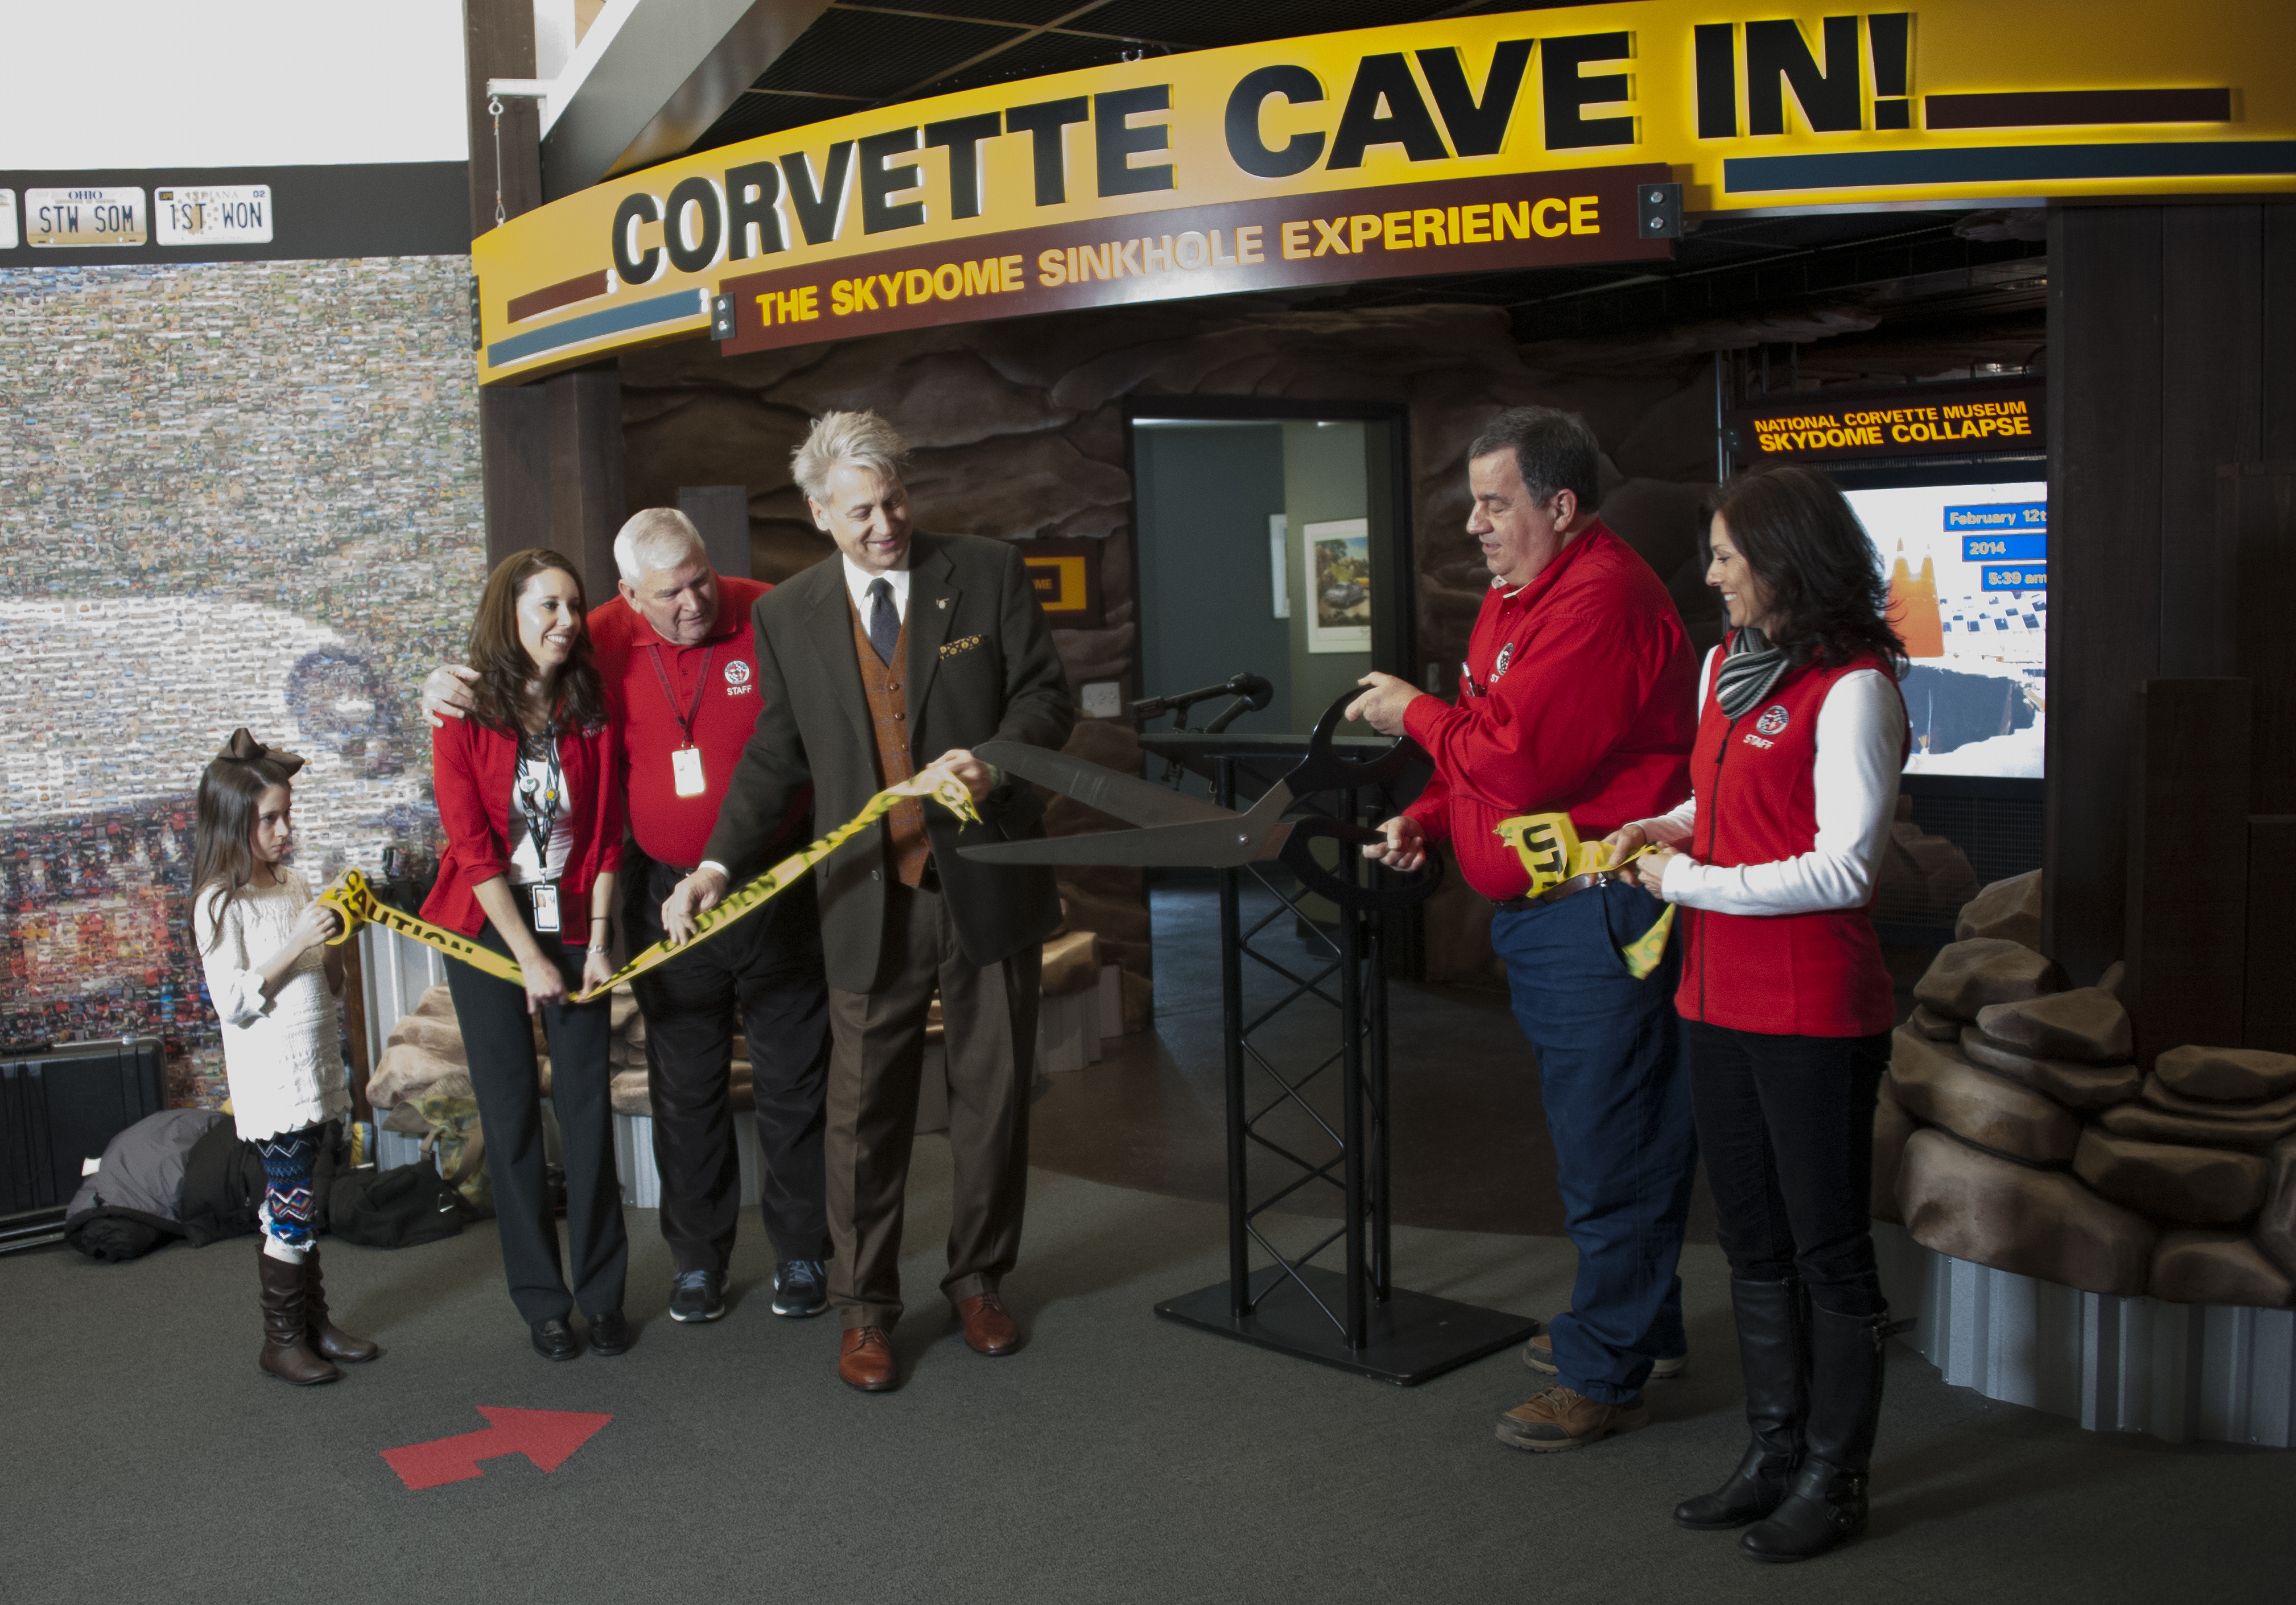 National Corvette Museum >> Corvette Cave In Exhibit Opens On Two Year Anniversary Of Museum